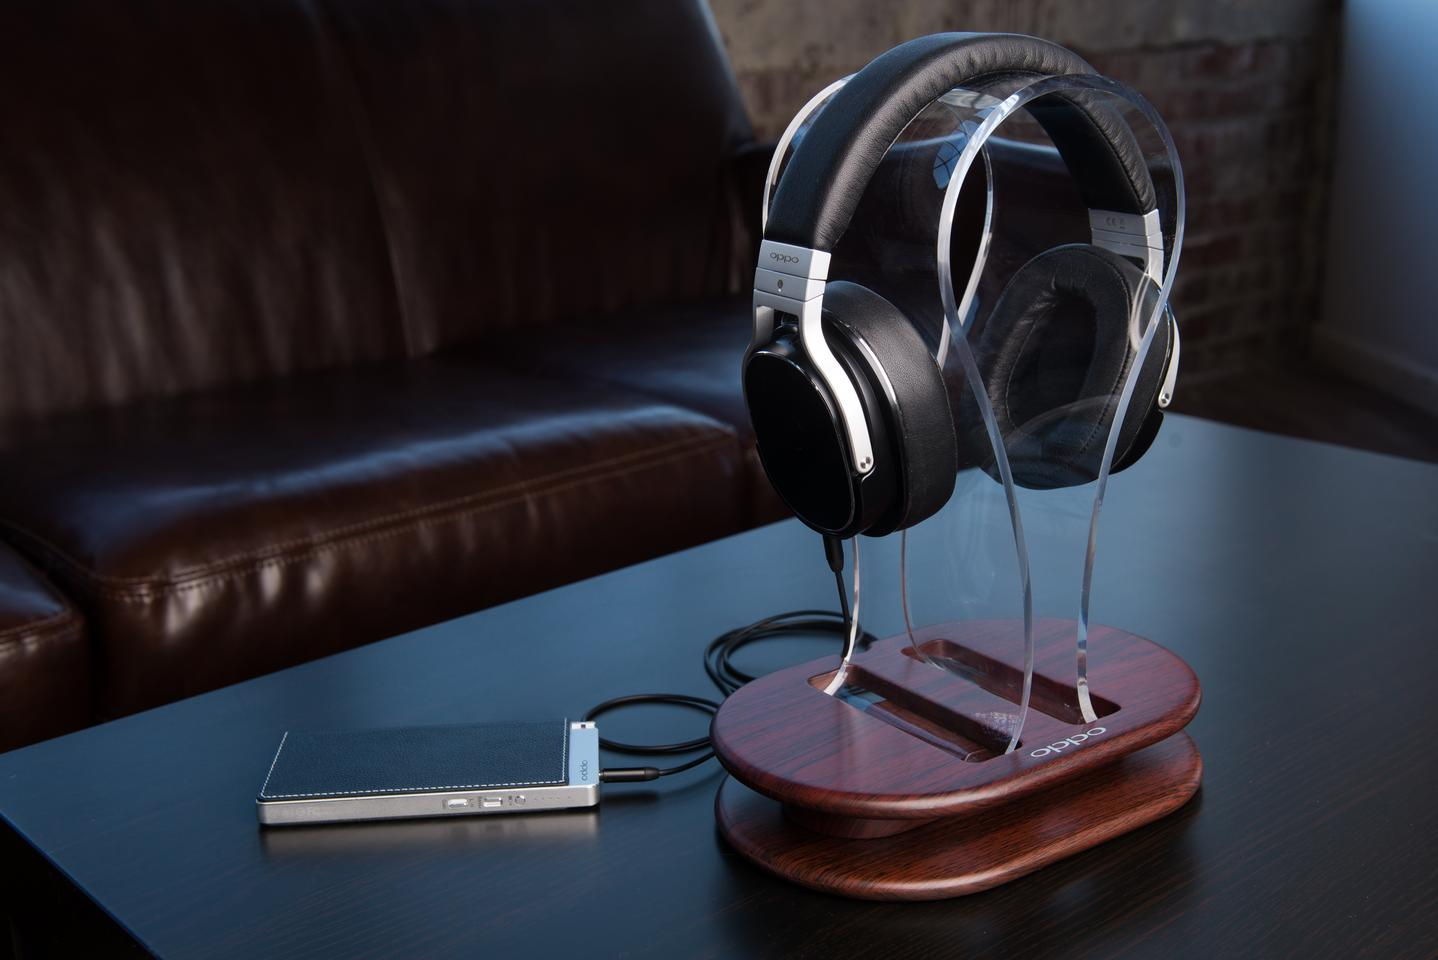 Oppo Digital's PM-3 closed-back planar magnetic headphones with the company's HA-2 portable headphone amp